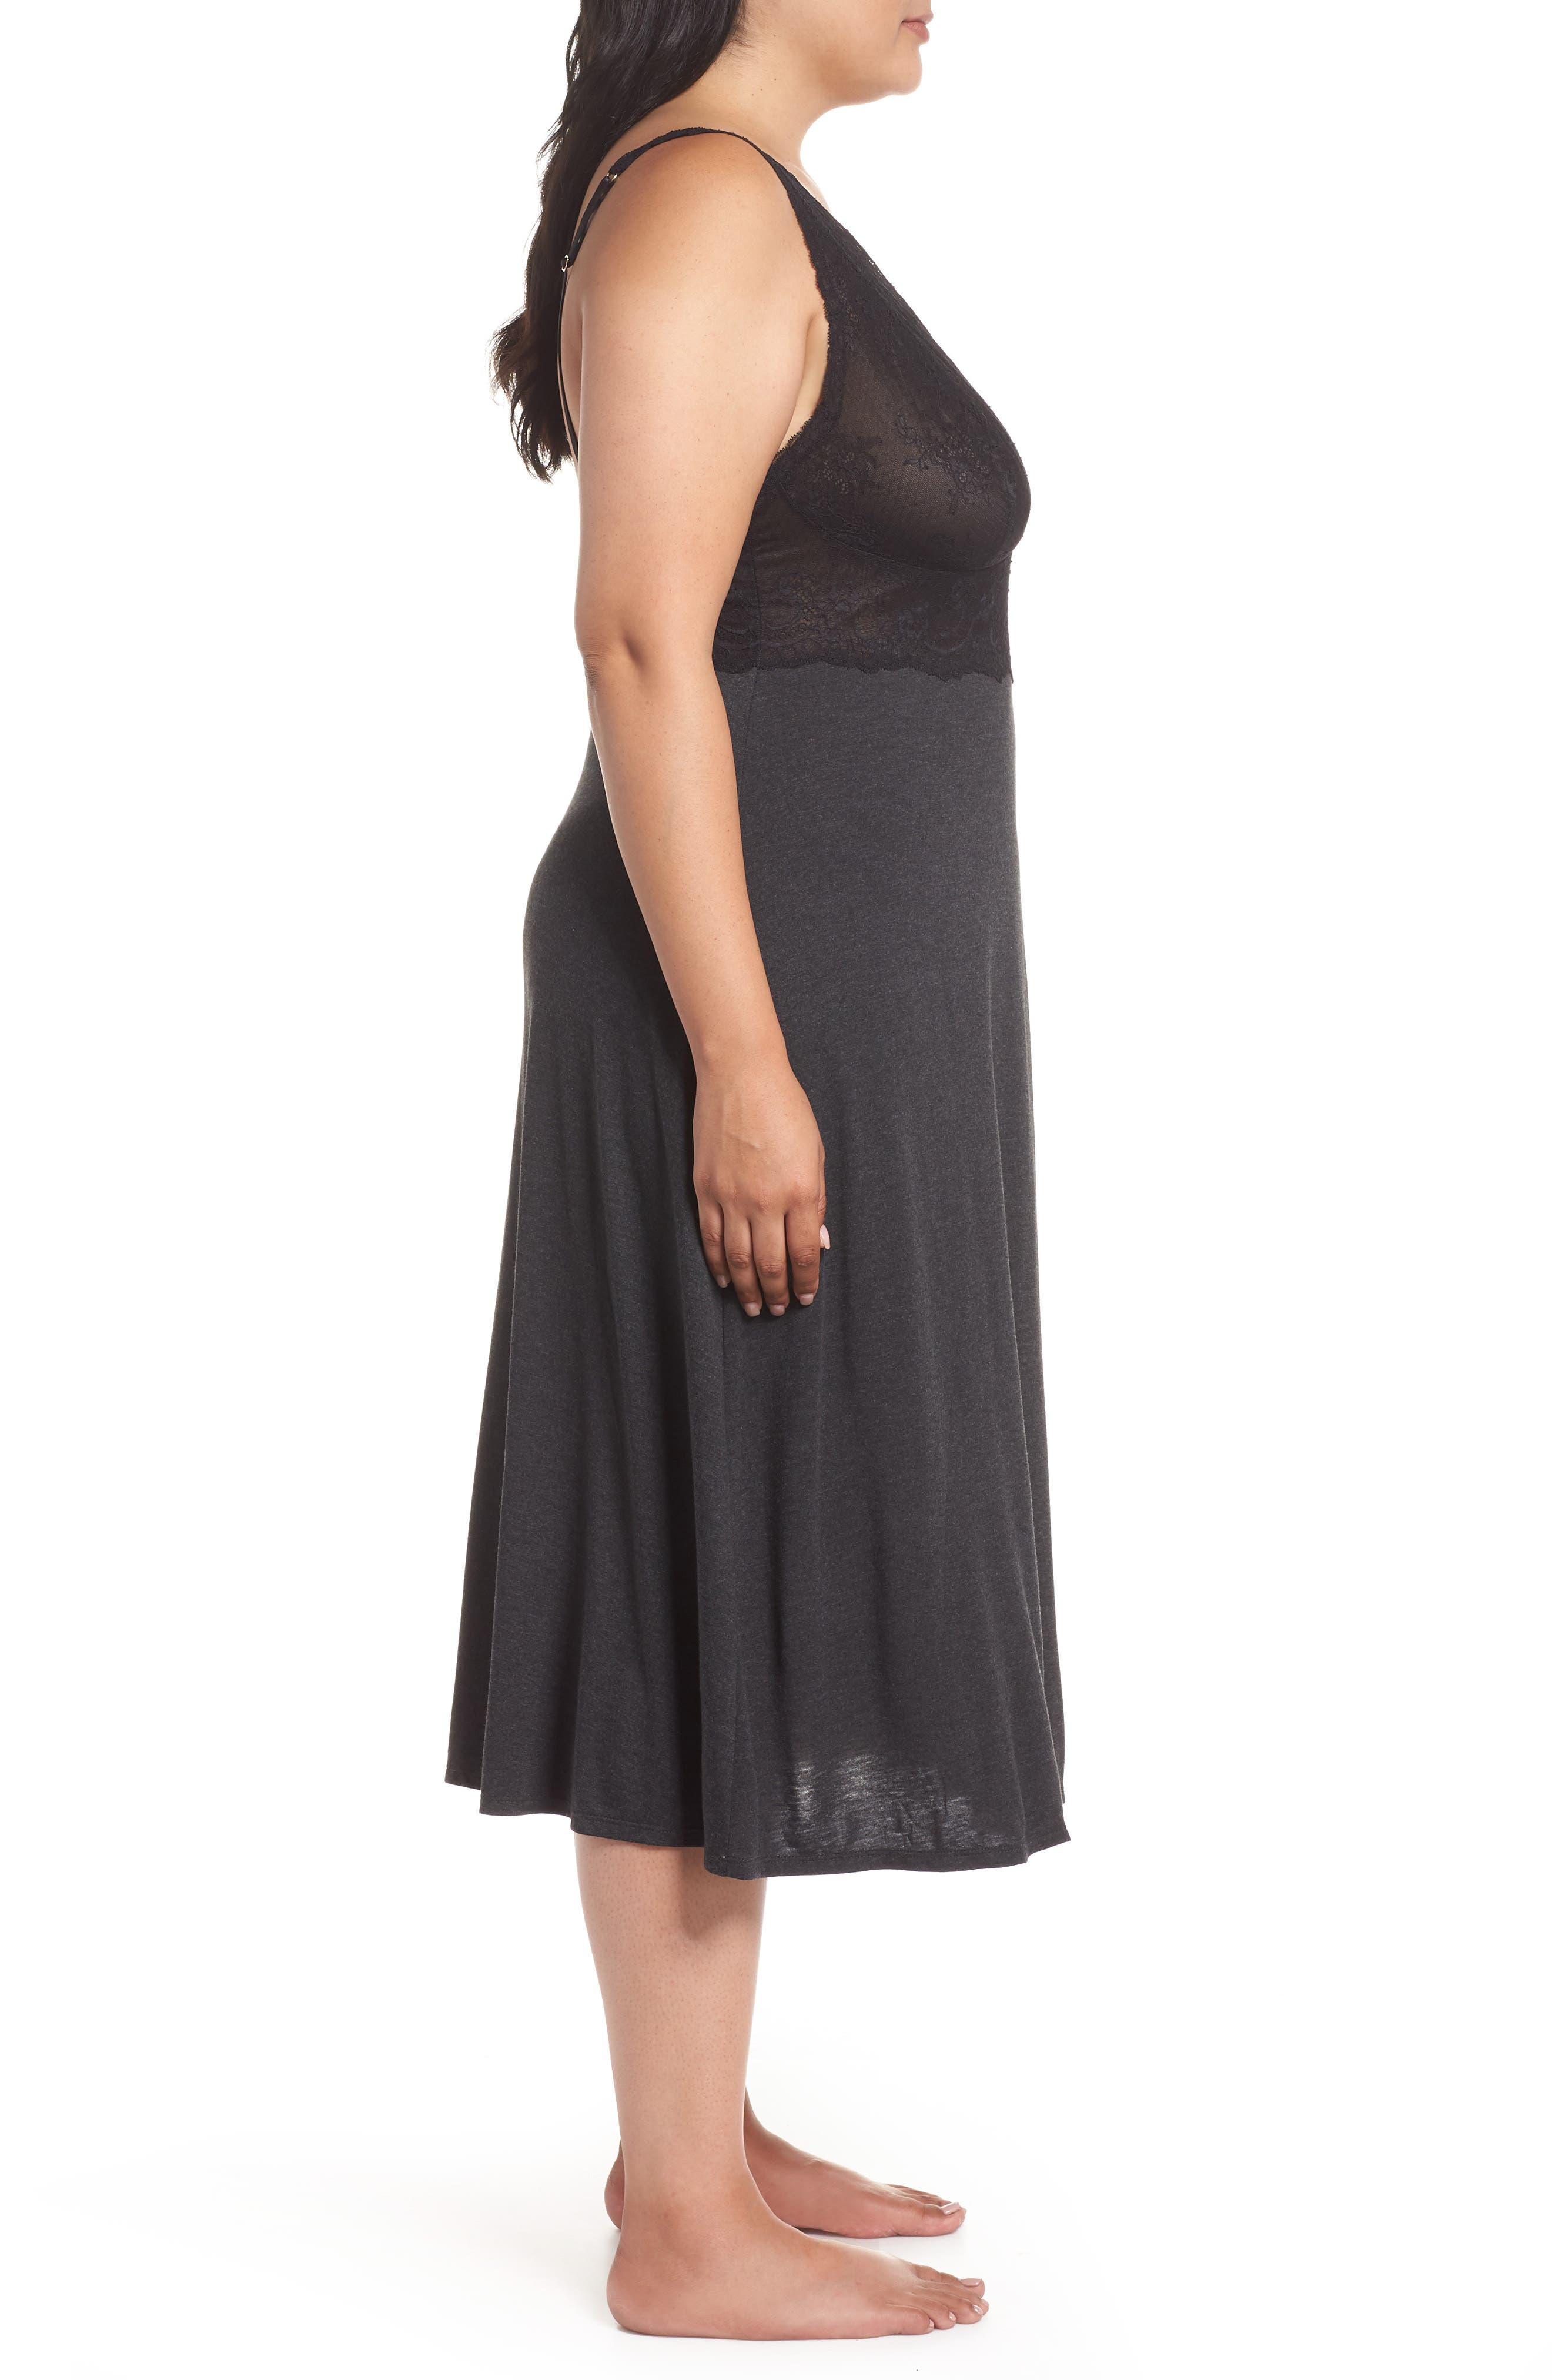 Luxe Shangri-La Nightgown,                             Alternate thumbnail 3, color,                             GREY WITH BLACK